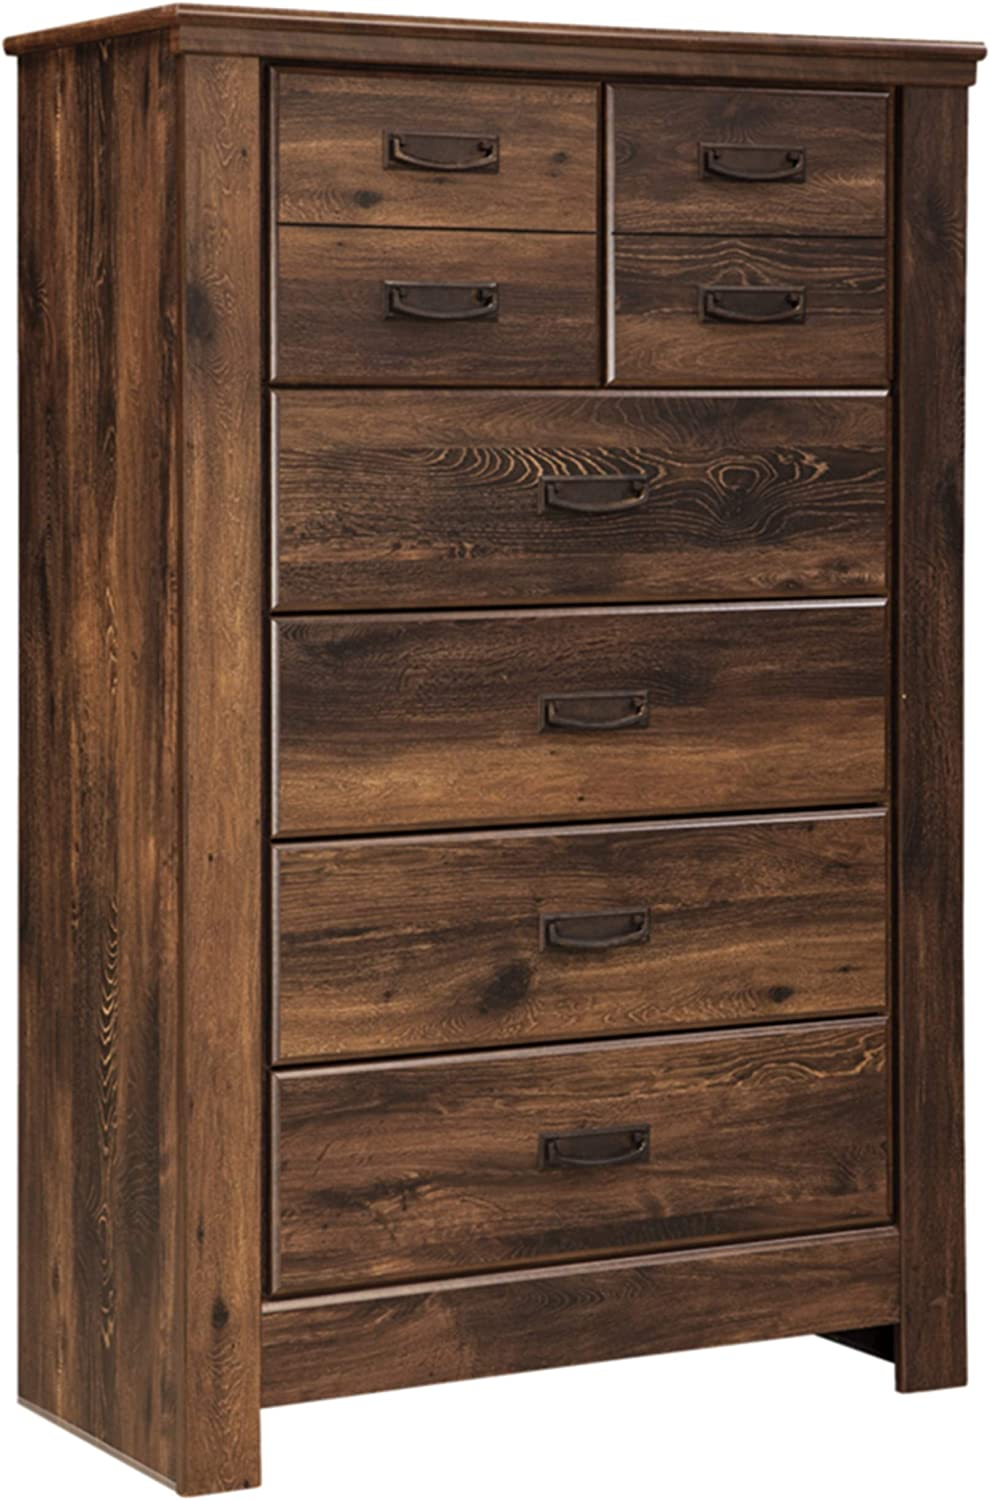 Ashley Furniture Signature Design - Quinden Chest of Drawers - 5 Drawers - Vintage Casual - Dark Brown